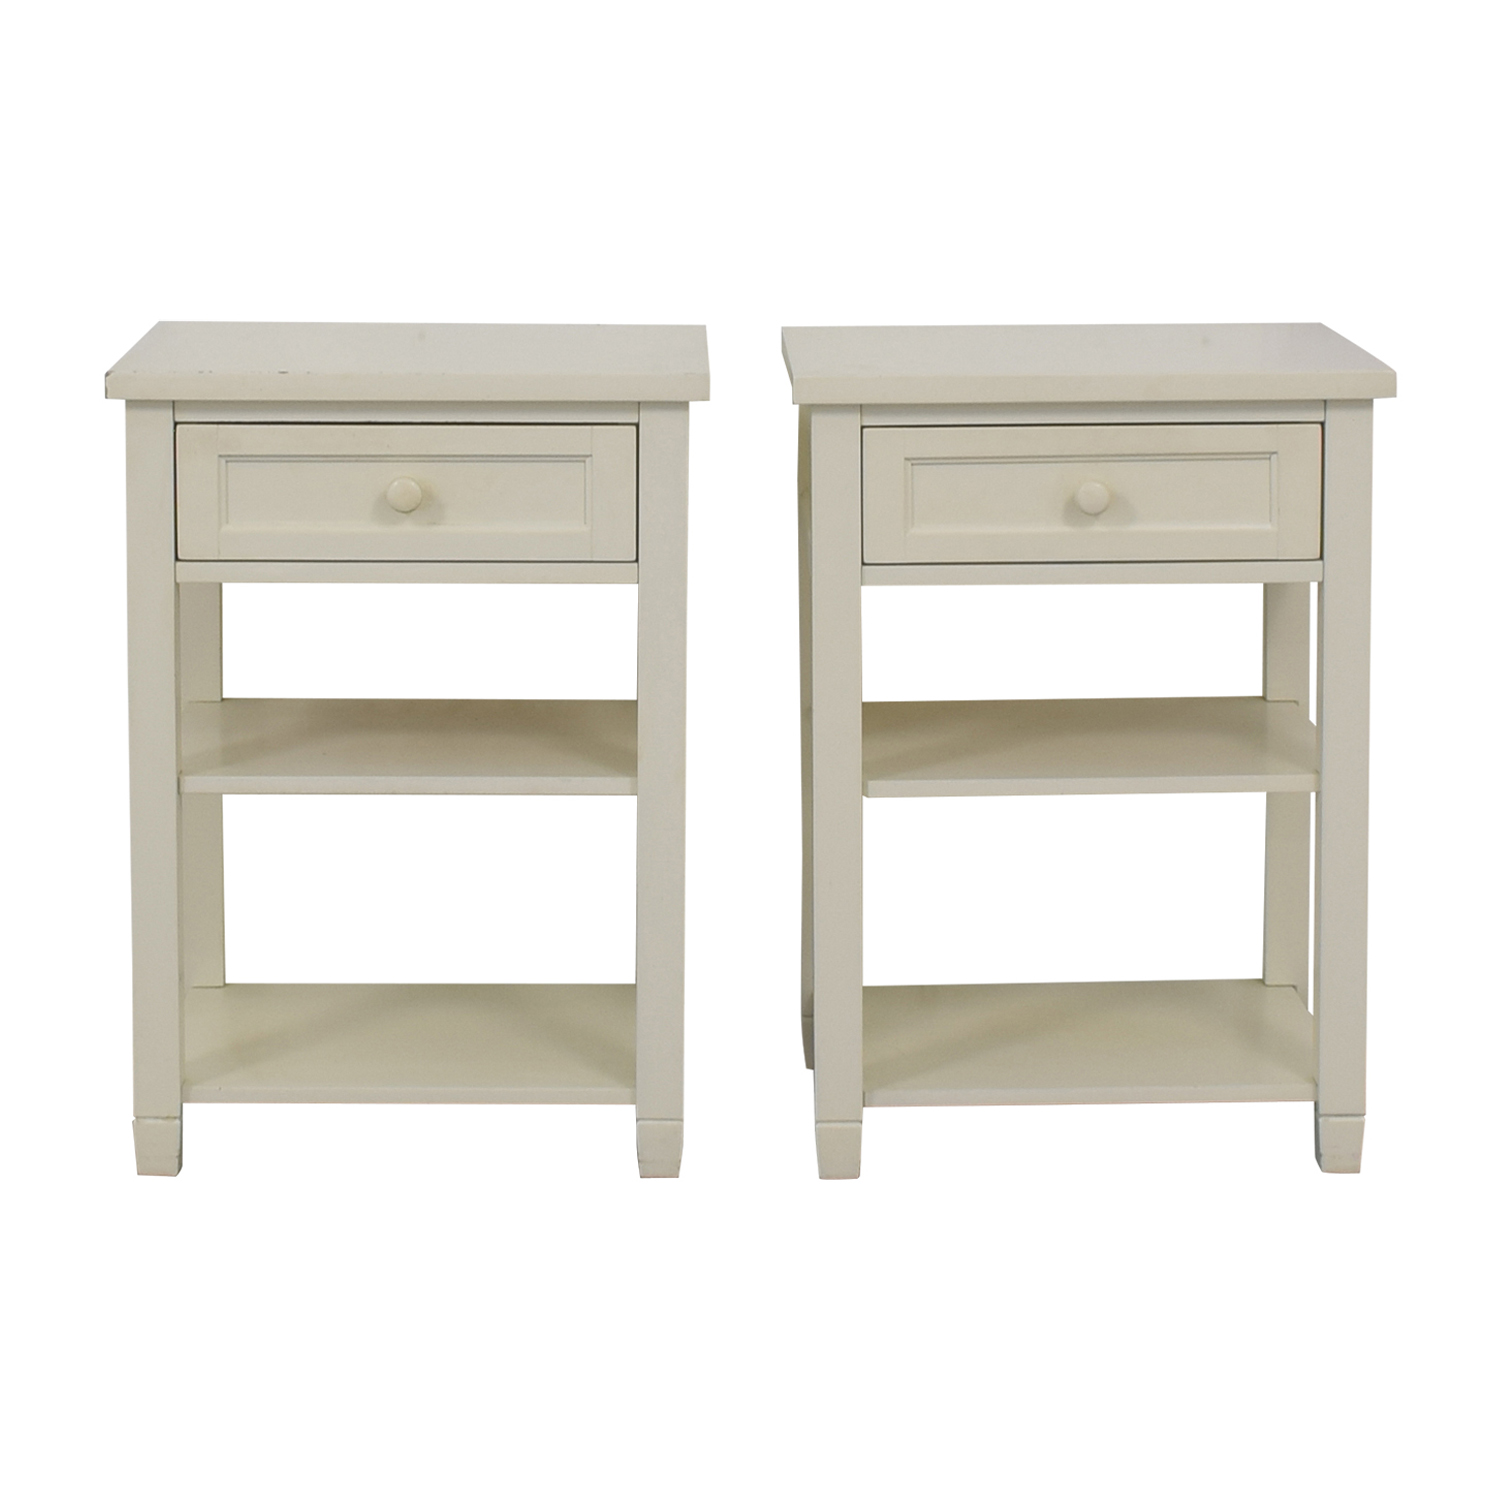 shop Pottery Barn Kids Pottery Barn Kids White Single Drawer End Tables online